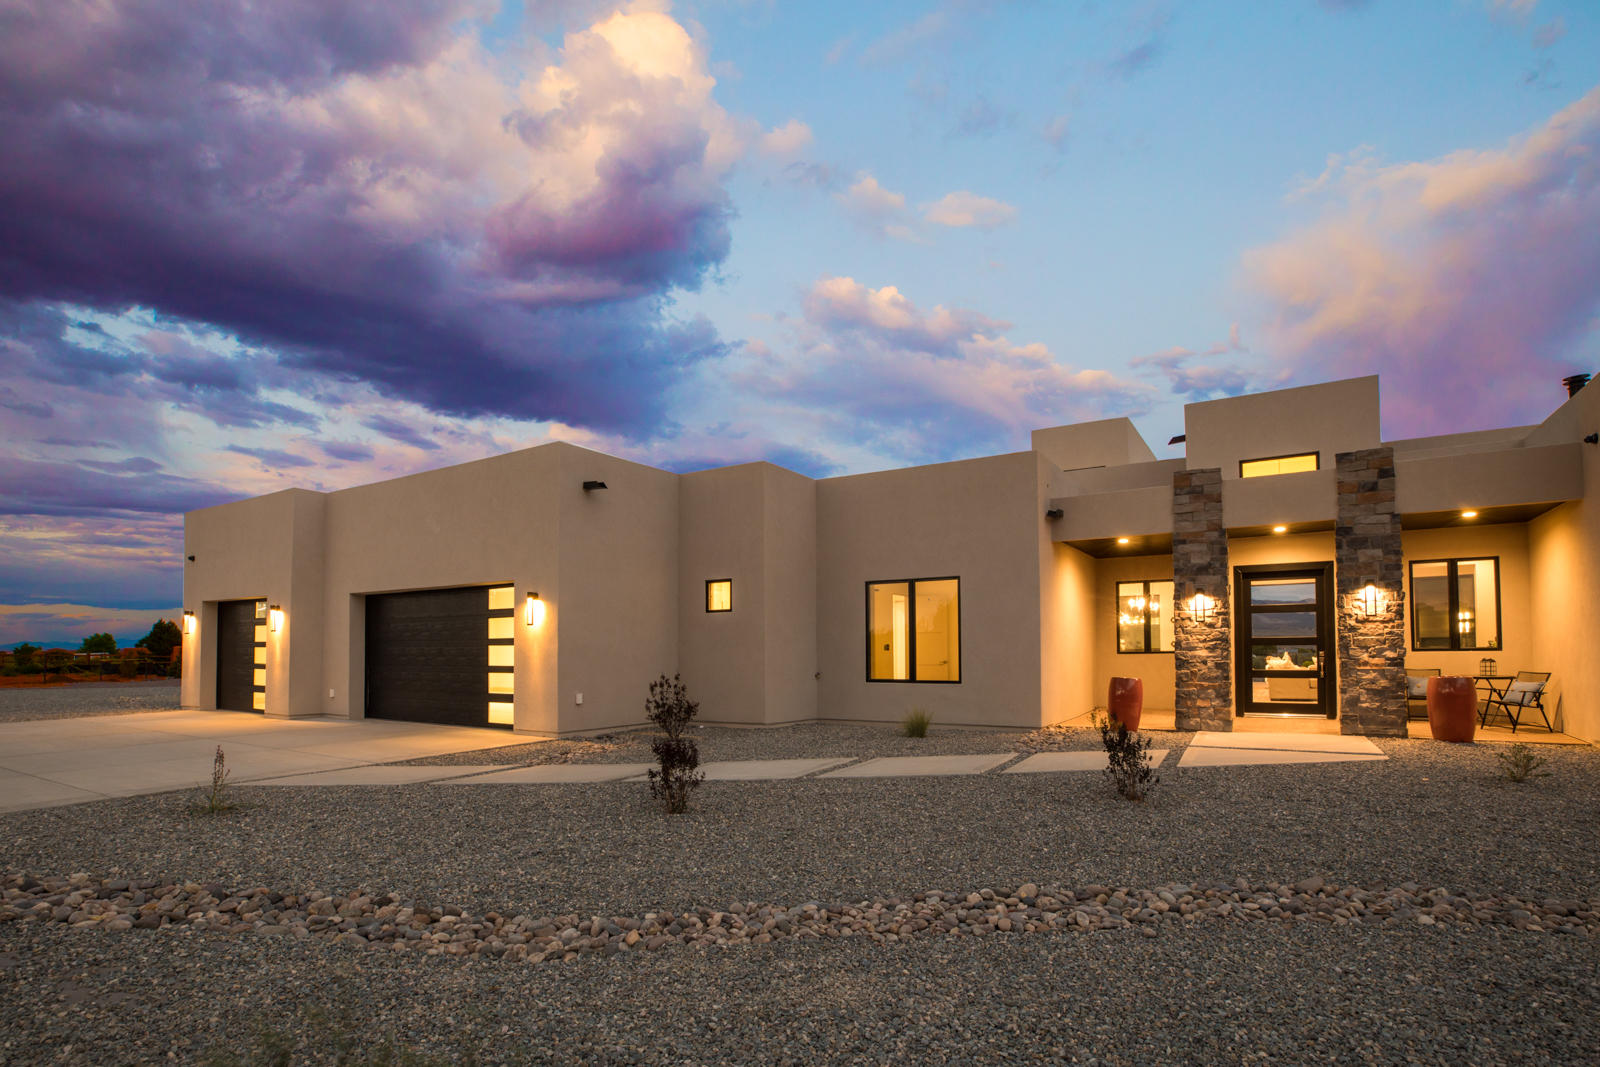 New custom-built home in Corrales; stunning views of Sandia Mountains and sparkling city lights.  One acre lot fenced in w/security gate, open floor plan with wall of sliding glass doors to the covered 1200 sq ft patio; built-in grill, fireplace and skylights.  Kitchen is a chef's heaven with an oversized island, butler's pantry & Thermador appliances. Master has awesome views, walk-through shower, tub and walk-in closet. 4 spacious bedrooms with baths and walk-in closets and home office w/views